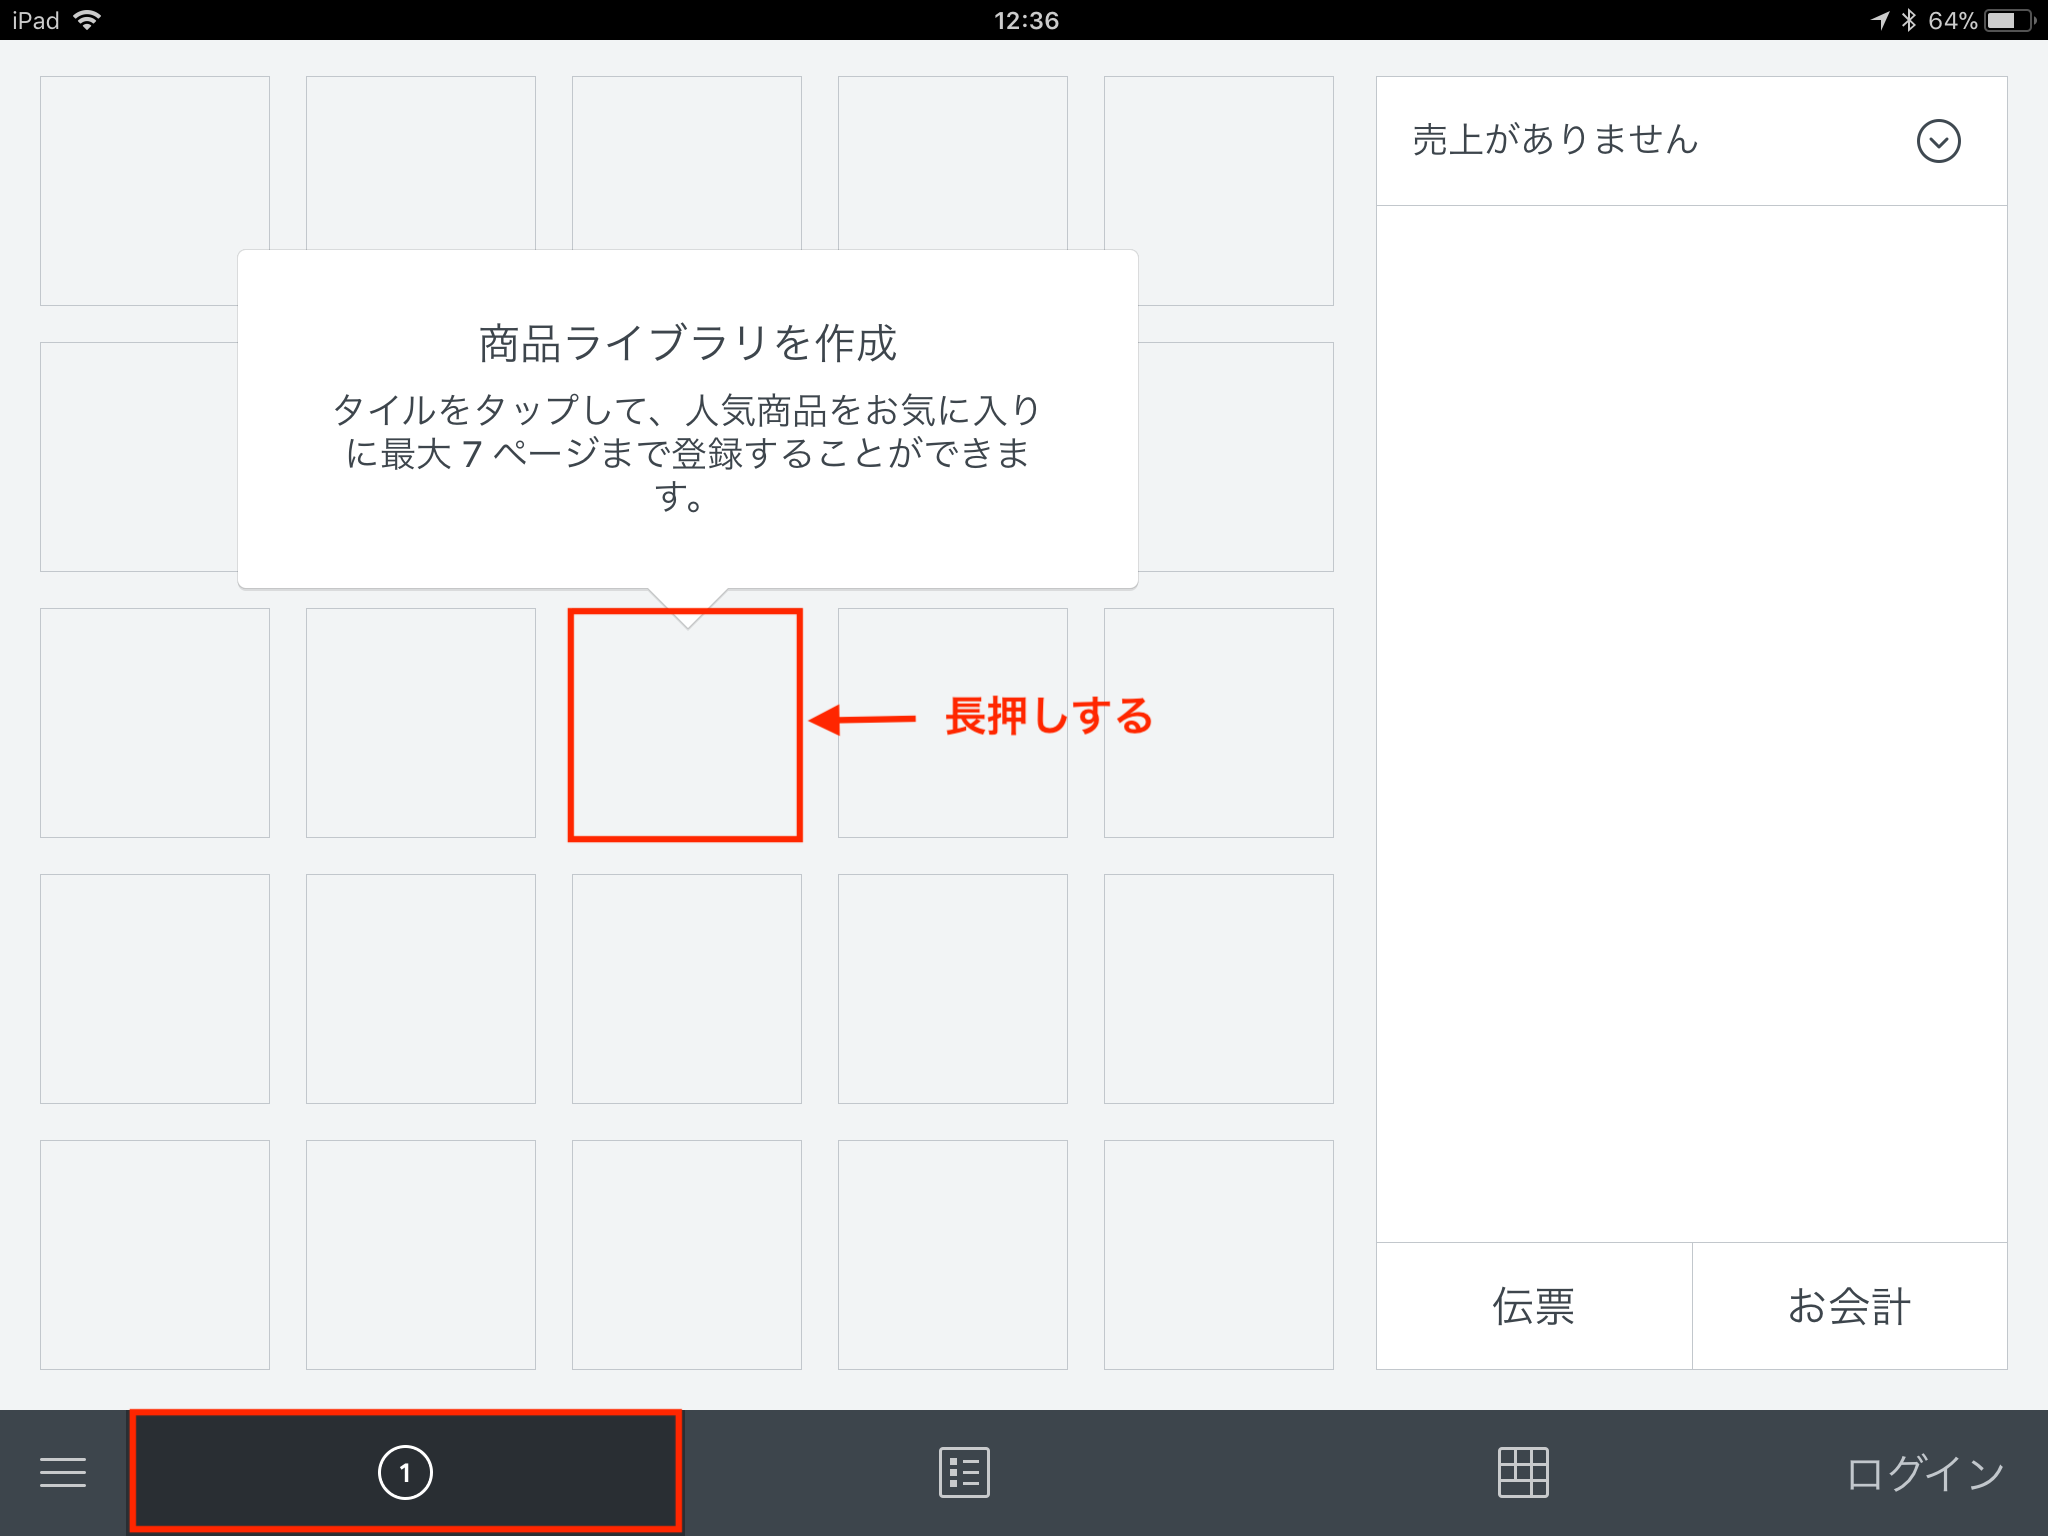 JP_iPad_Favorites_Tap and hold any empty square